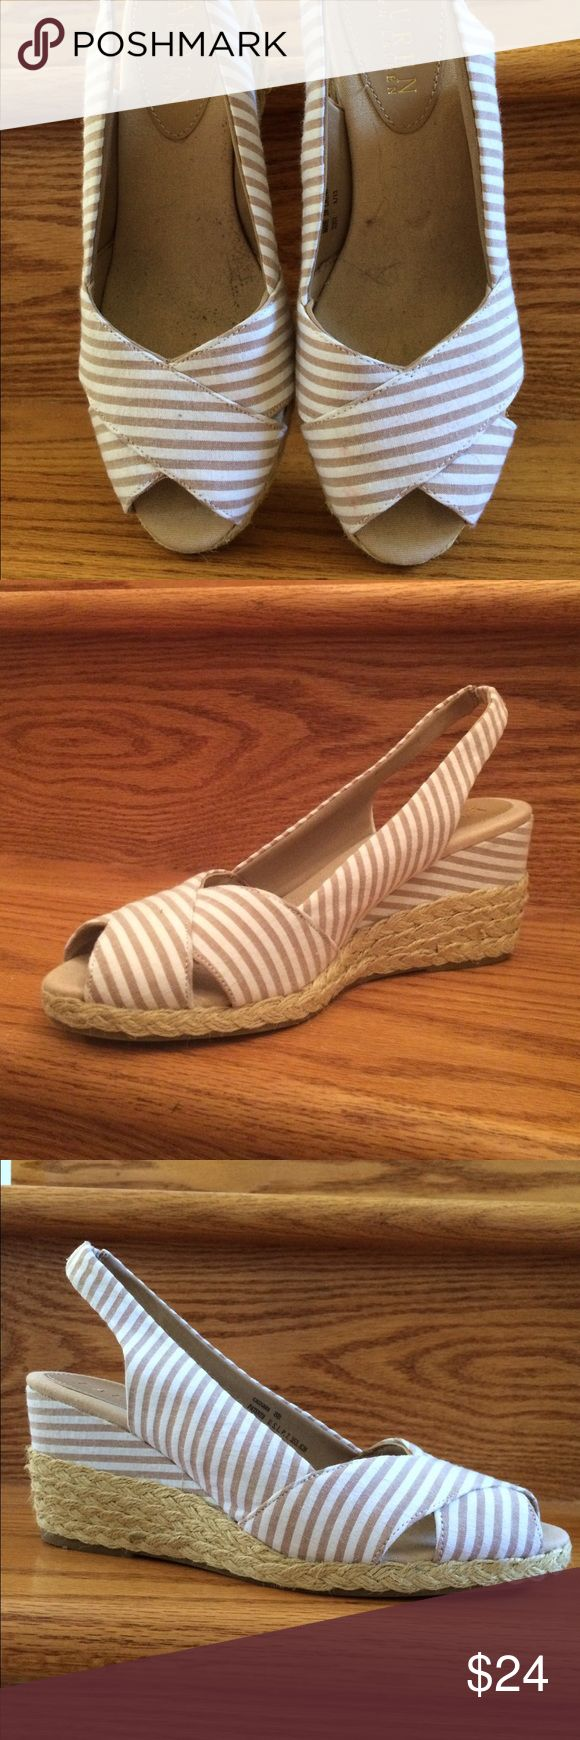 """Like new Ralph Lauren Wedges Perfect condition‼️ Stripped white and tan Ralph Lauren wedges, 3"""" height. Very comfortable. Rauph Lauren Shoes Wedges"""